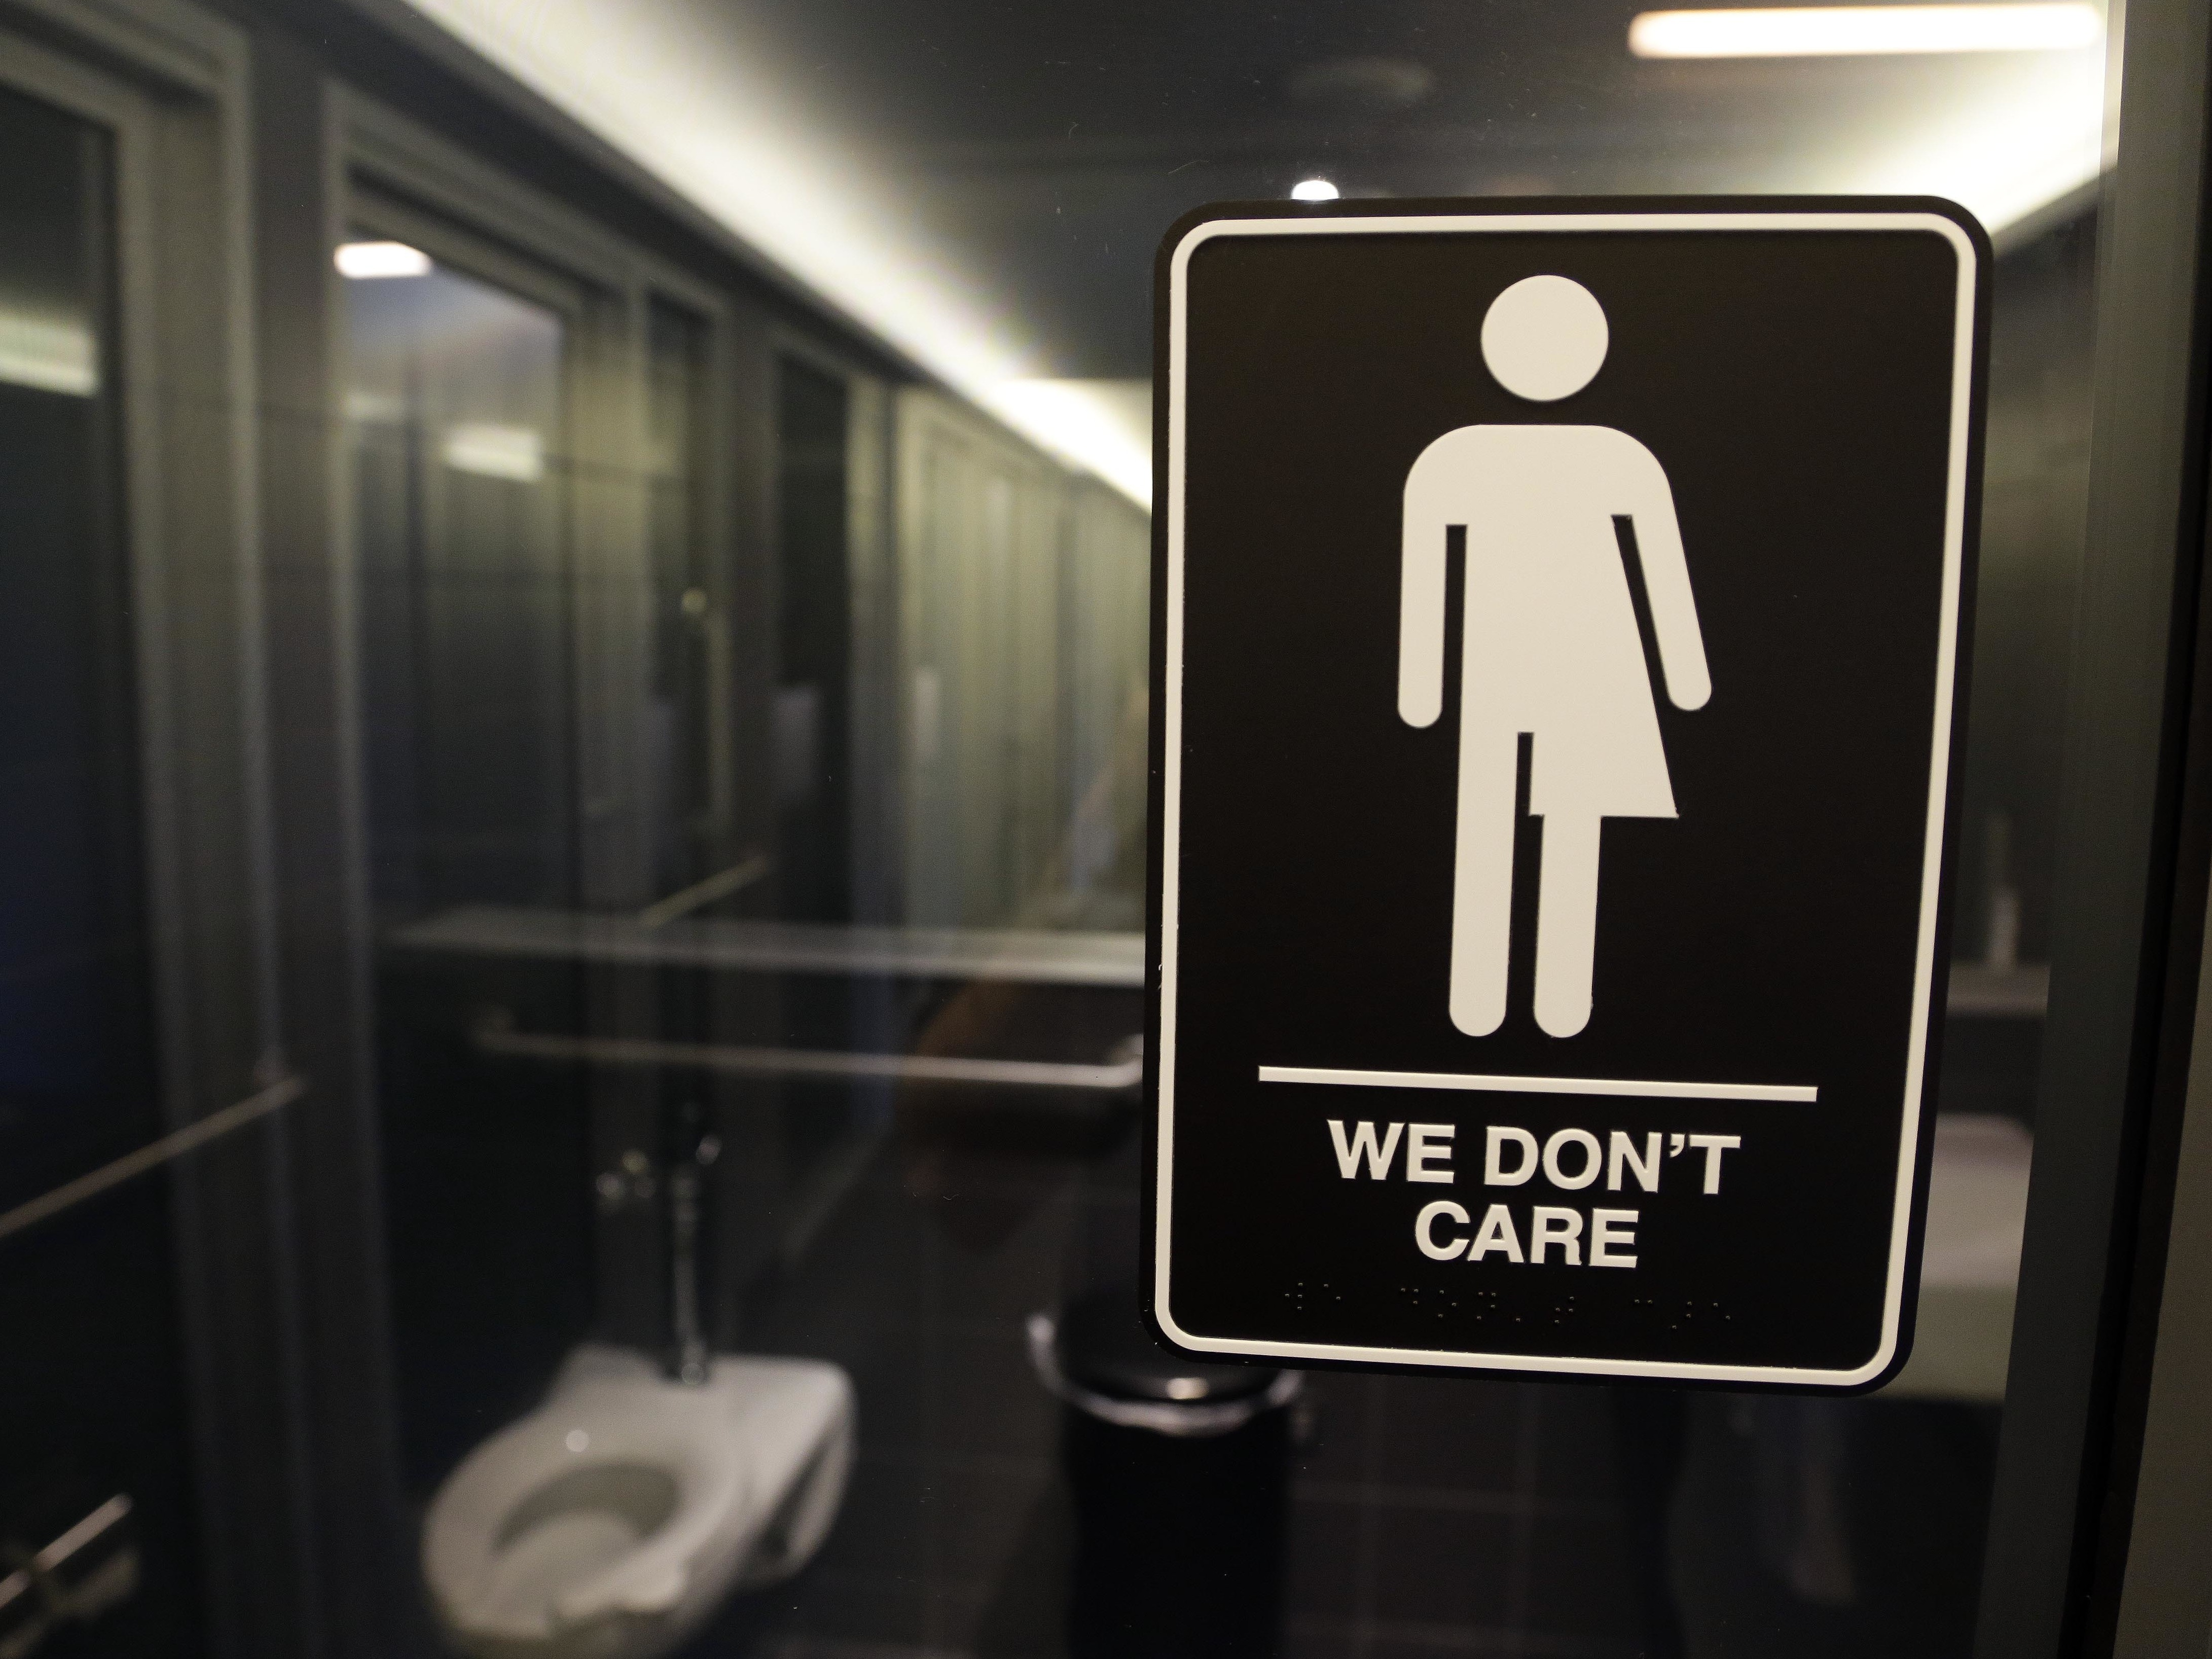 How A Poison Pill Worded As 'Sex' Gave Birth To Transgender Rights